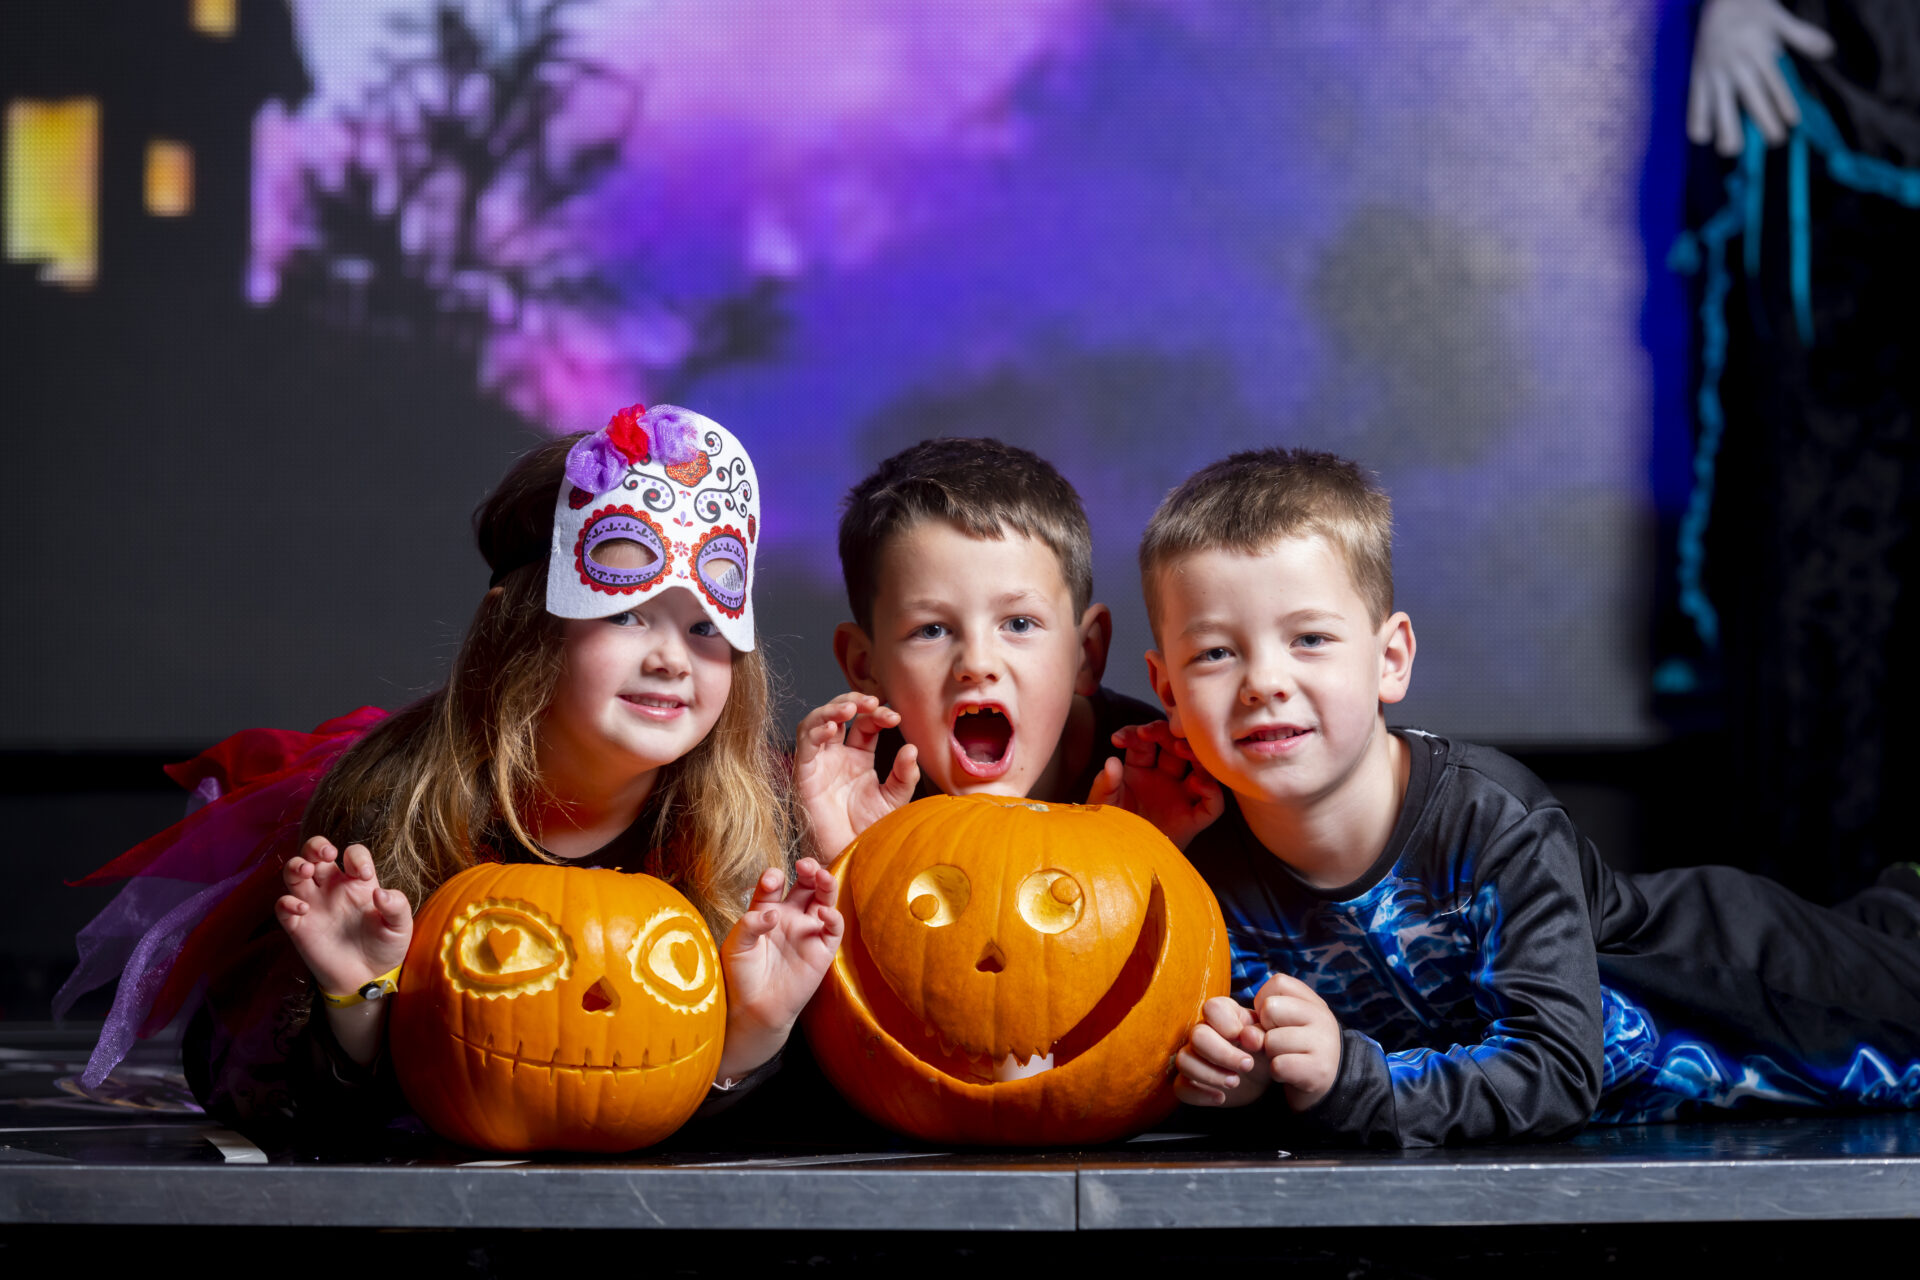 Staying safe at Halloween